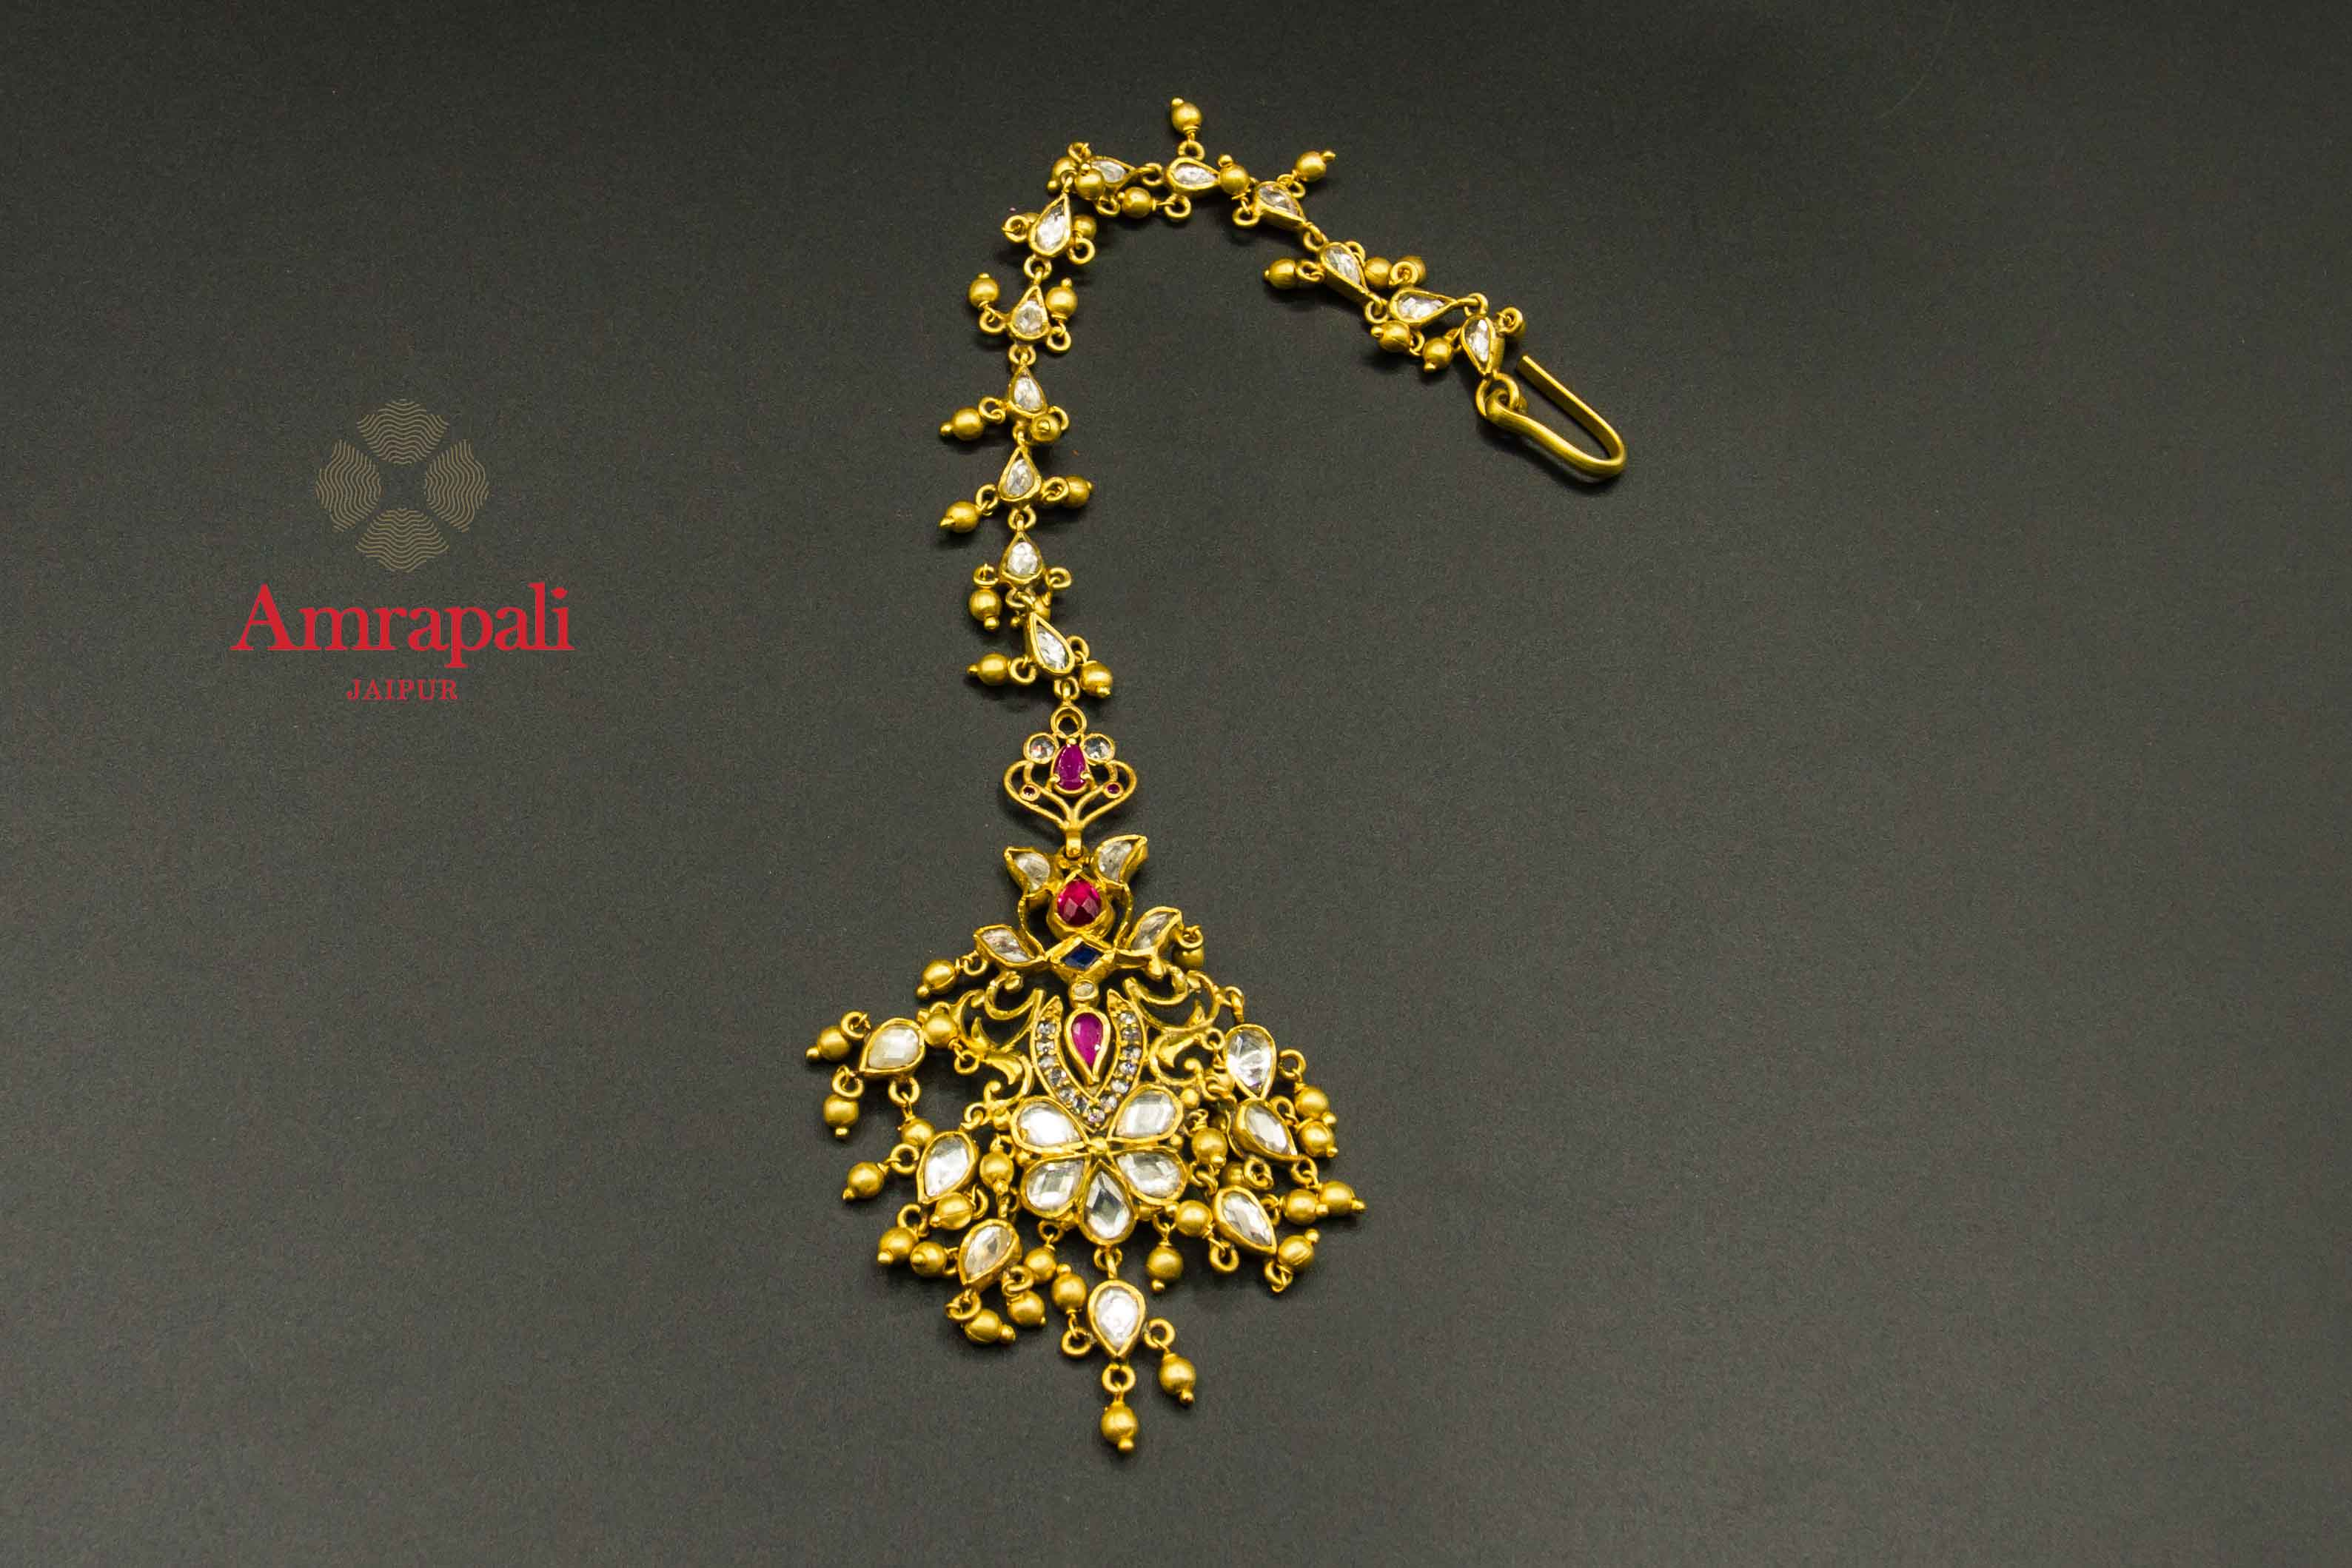 20C273 Silver Gold Plated Glass Floral Maang Tikka